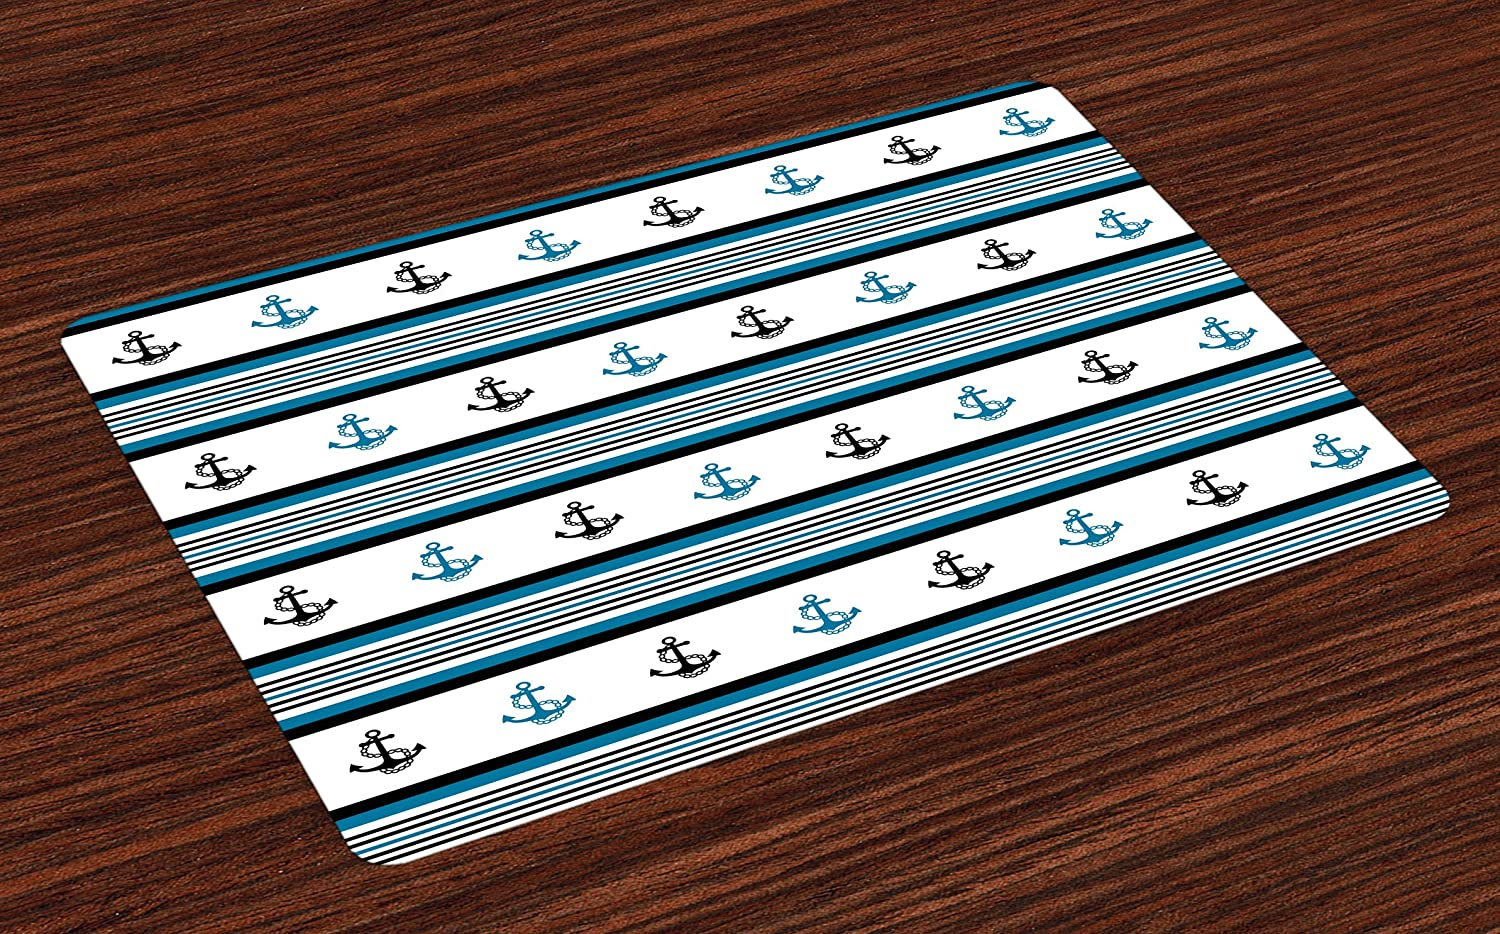 Ambesonne Anchor Place Mats Set of 4, Borders with Stripes and Anchor Hipster Design Retro Style Maritime, Washable Fabric Placemats for Dining Room Kitchen Table Decor, Blue Black White